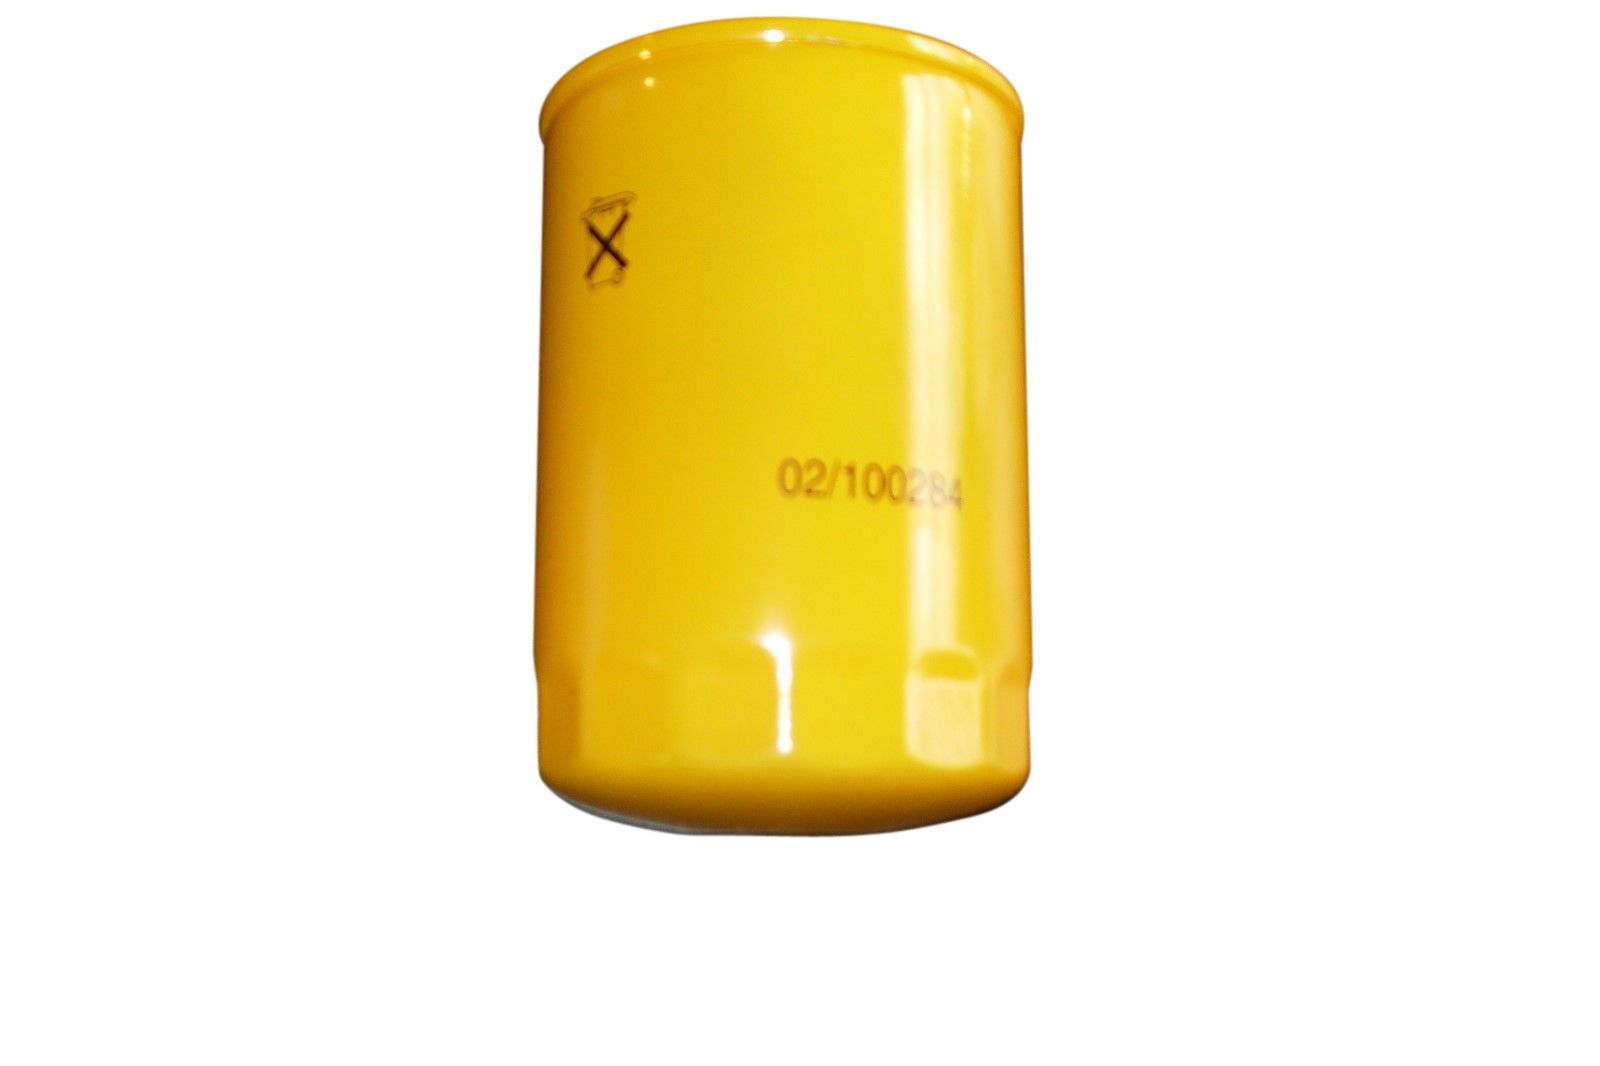 JCB PARTS OIL FILTER FOR VARIOUS PERKINS ENGINES 02/100284A